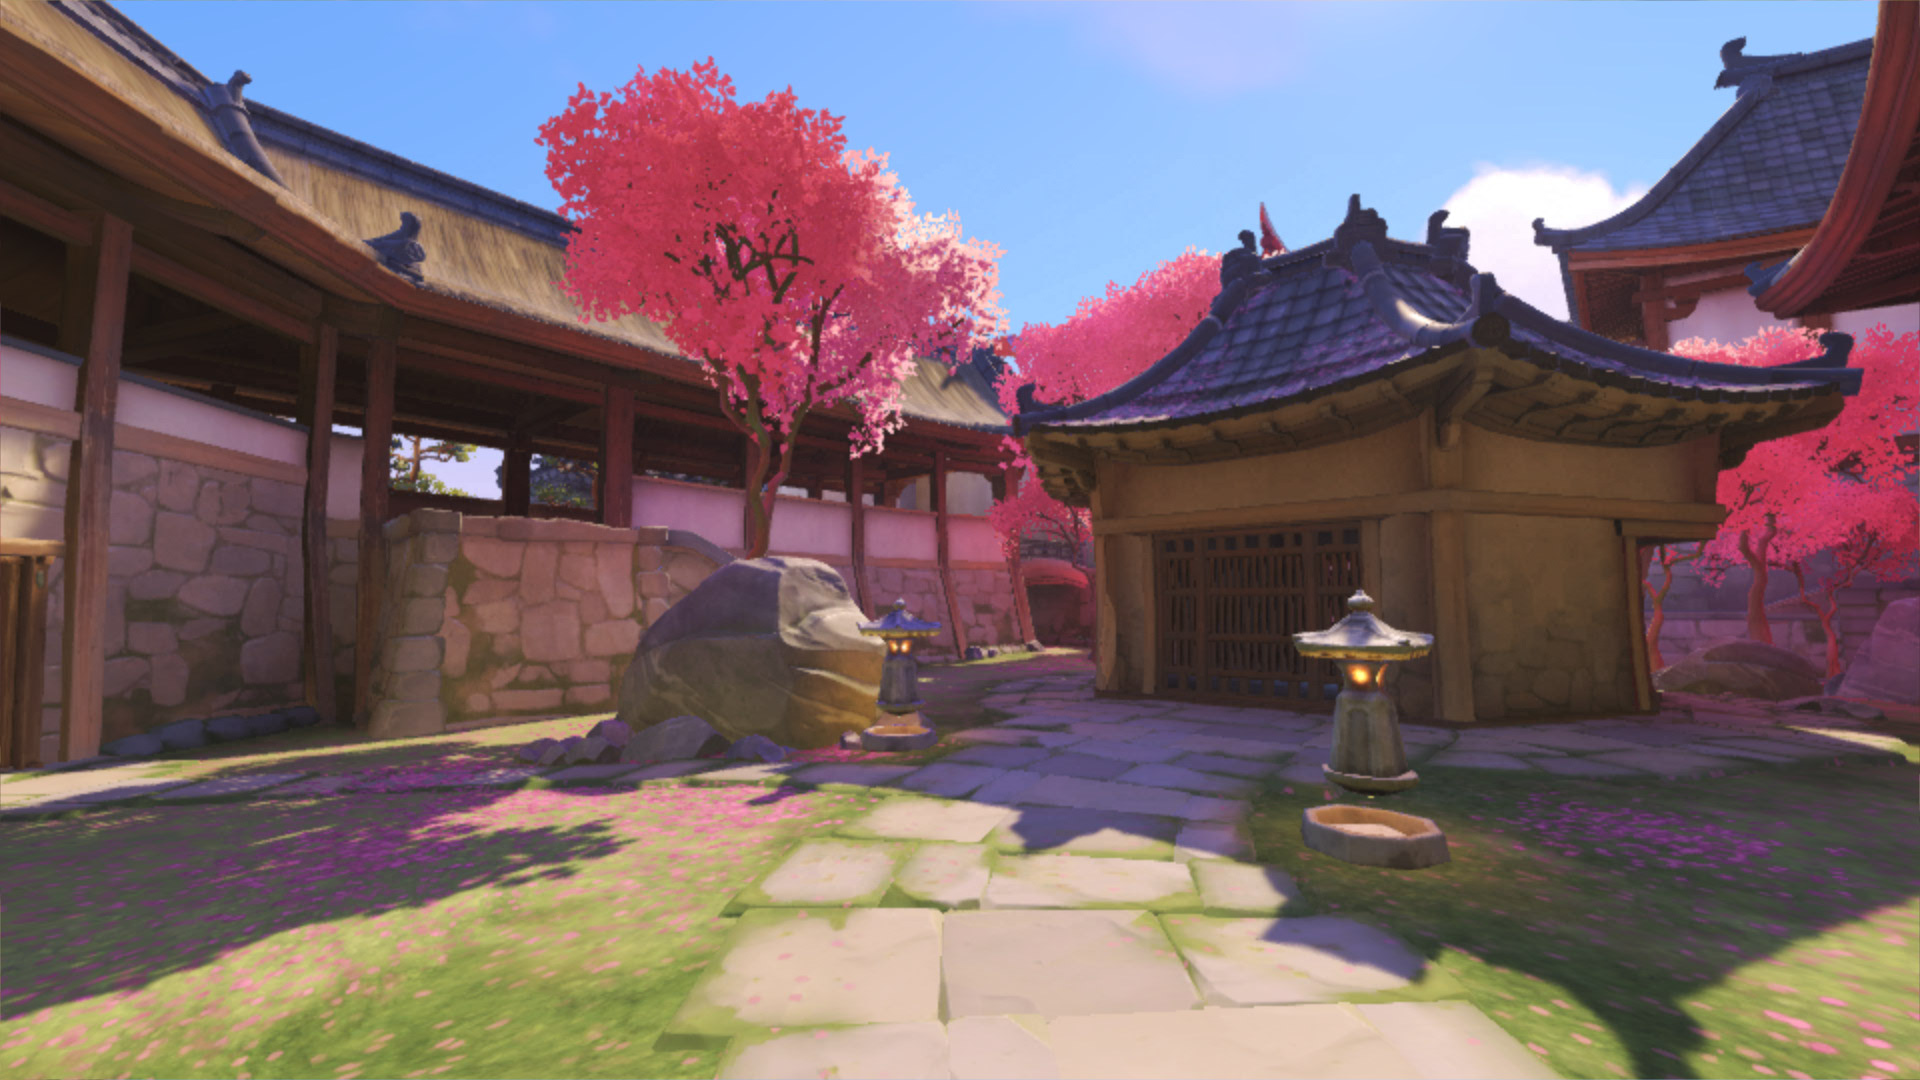 OVERWATCH Team Is Open To Map Editor GameTyrant